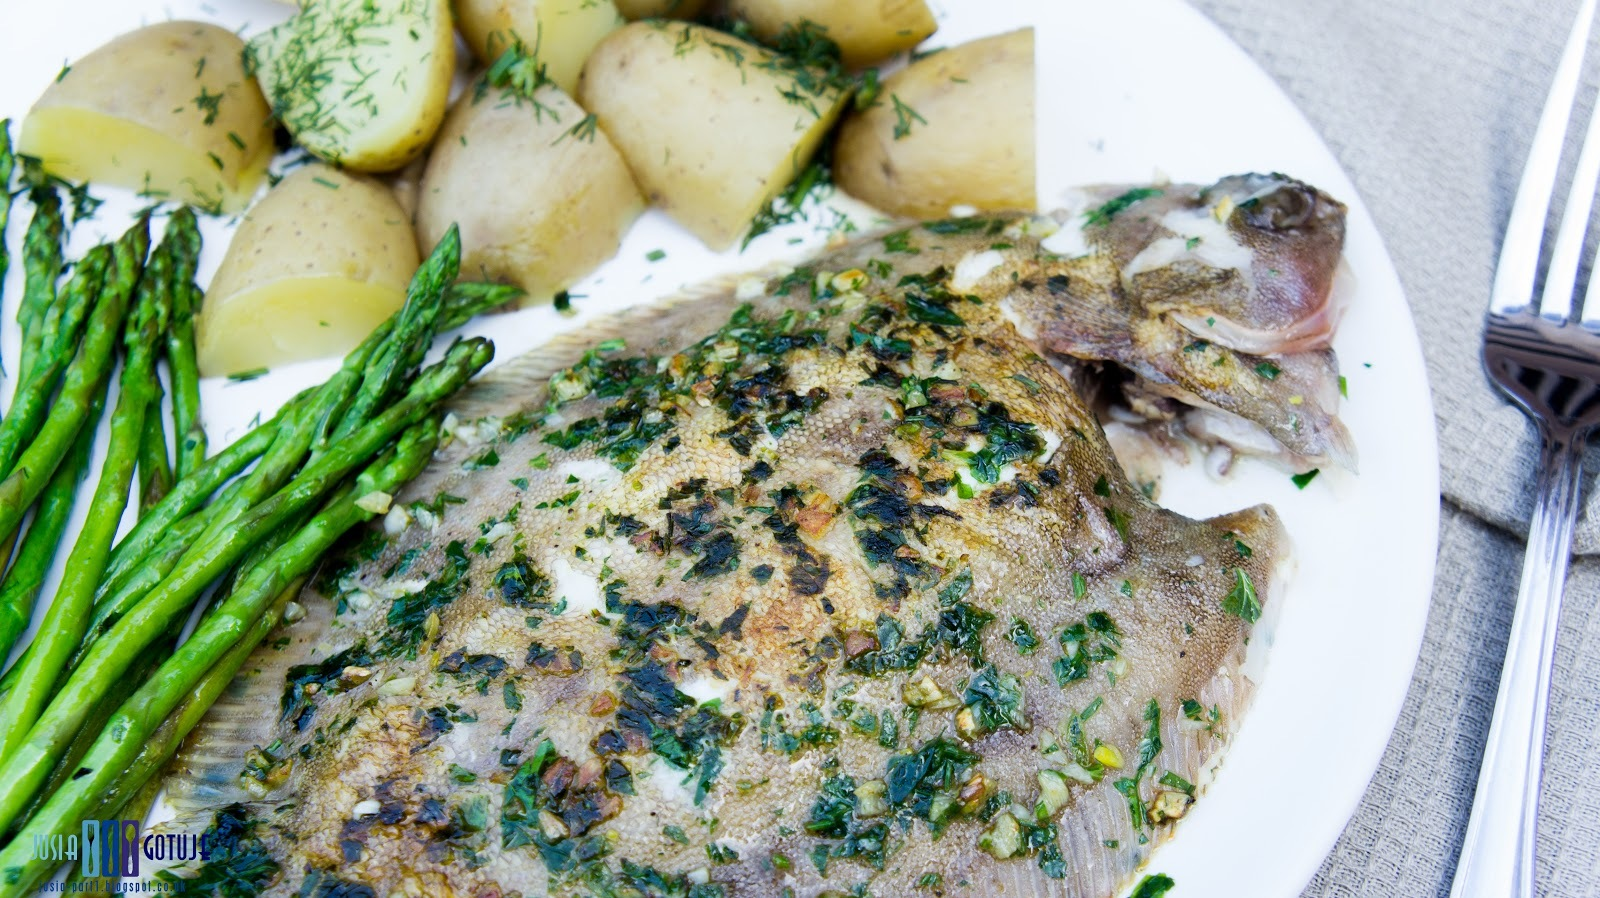 Grillowana sola z natką pietruszki i czosnkiem. / Grilled lemon sole with parsley and garlic.